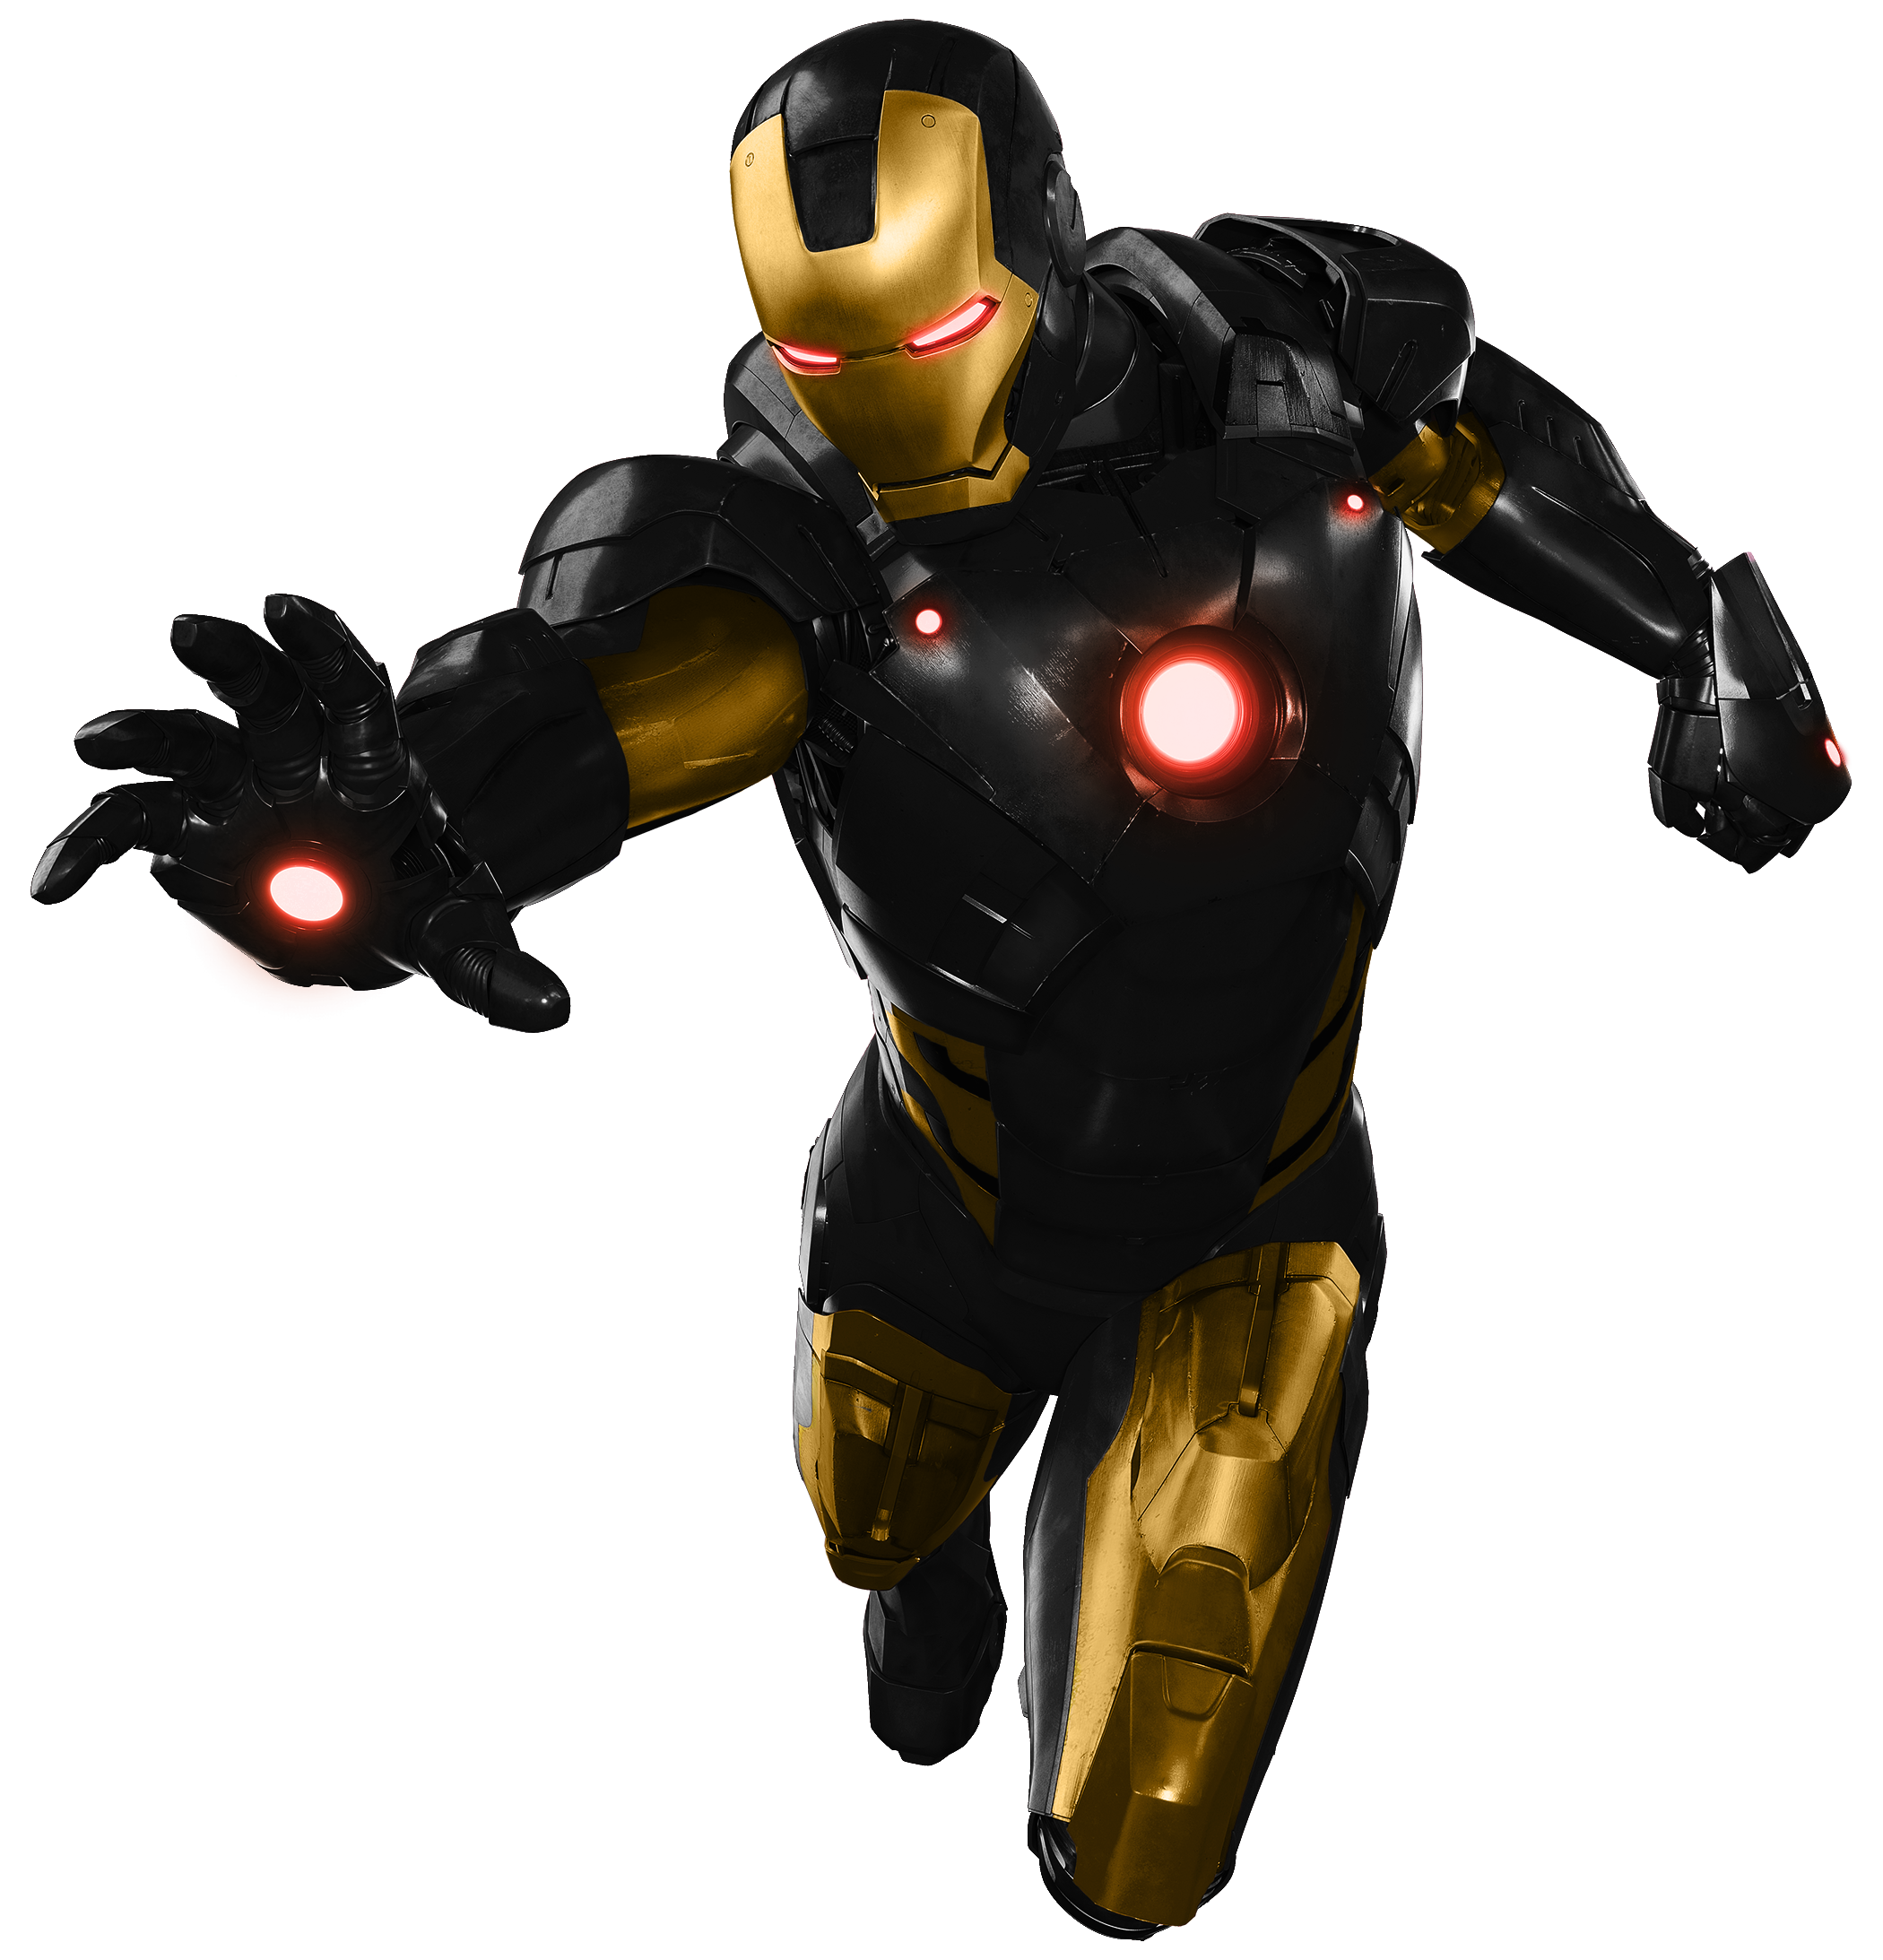 image - 3016184-iron man black gold666darks-d5ohgh0